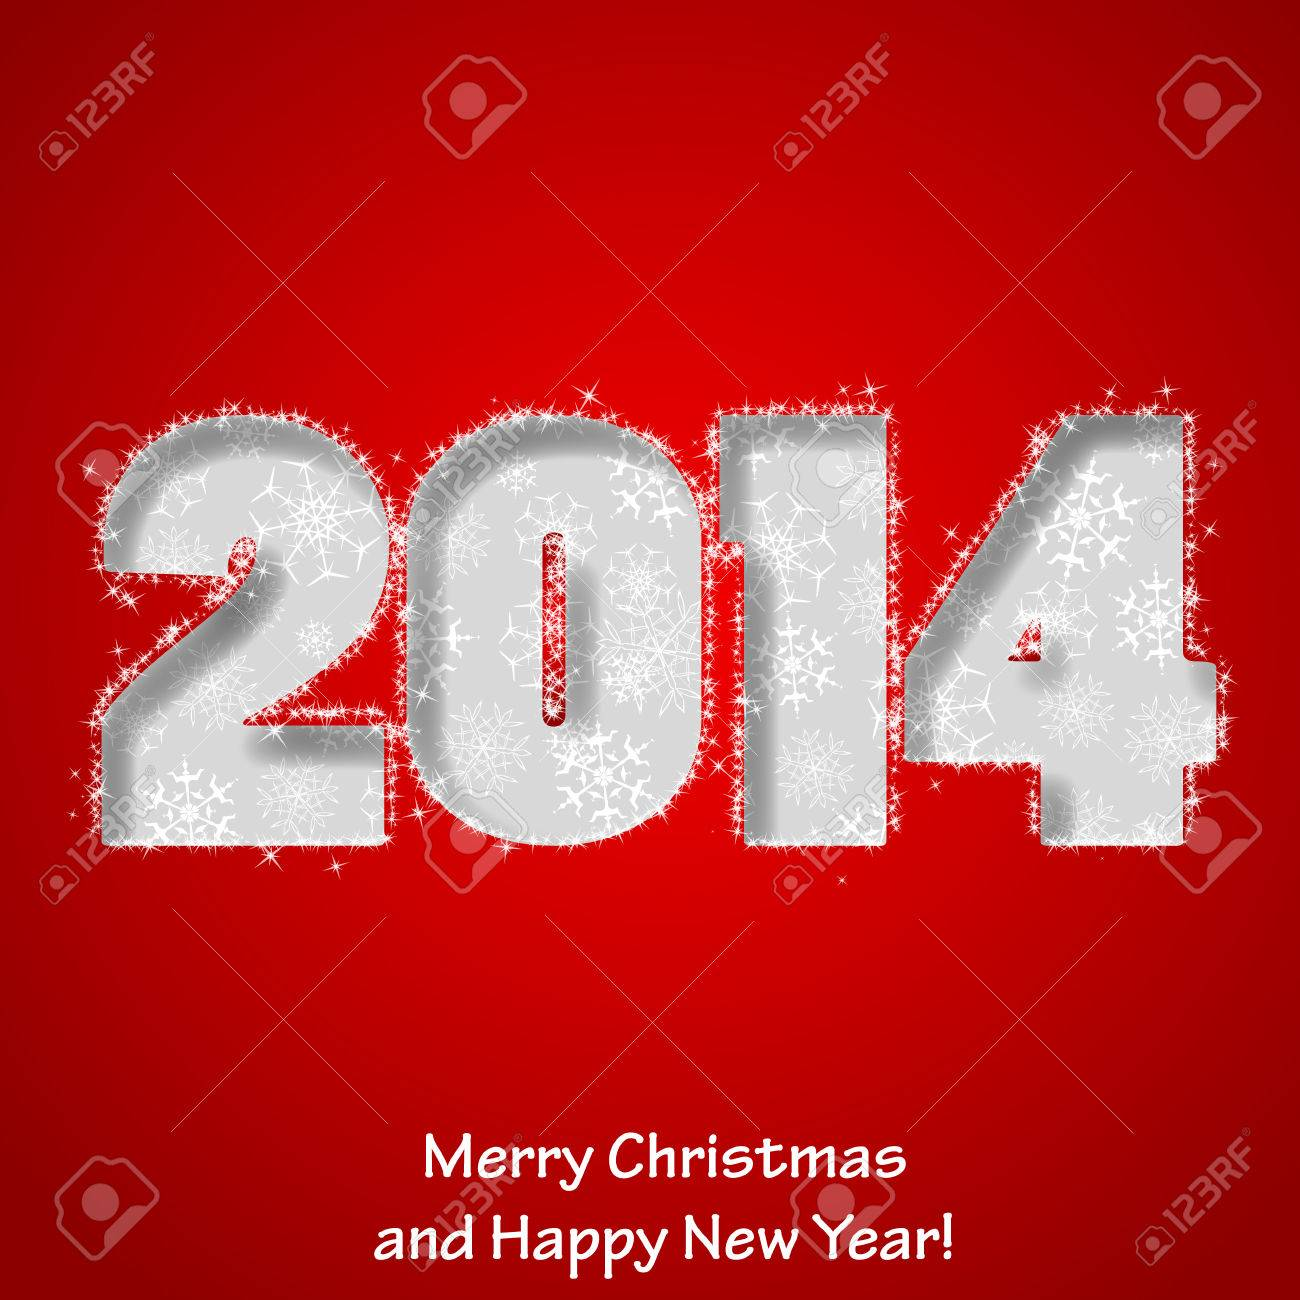 Modern Merry Christmas and Happy New Year greeting card. Stock Vector - 23087218